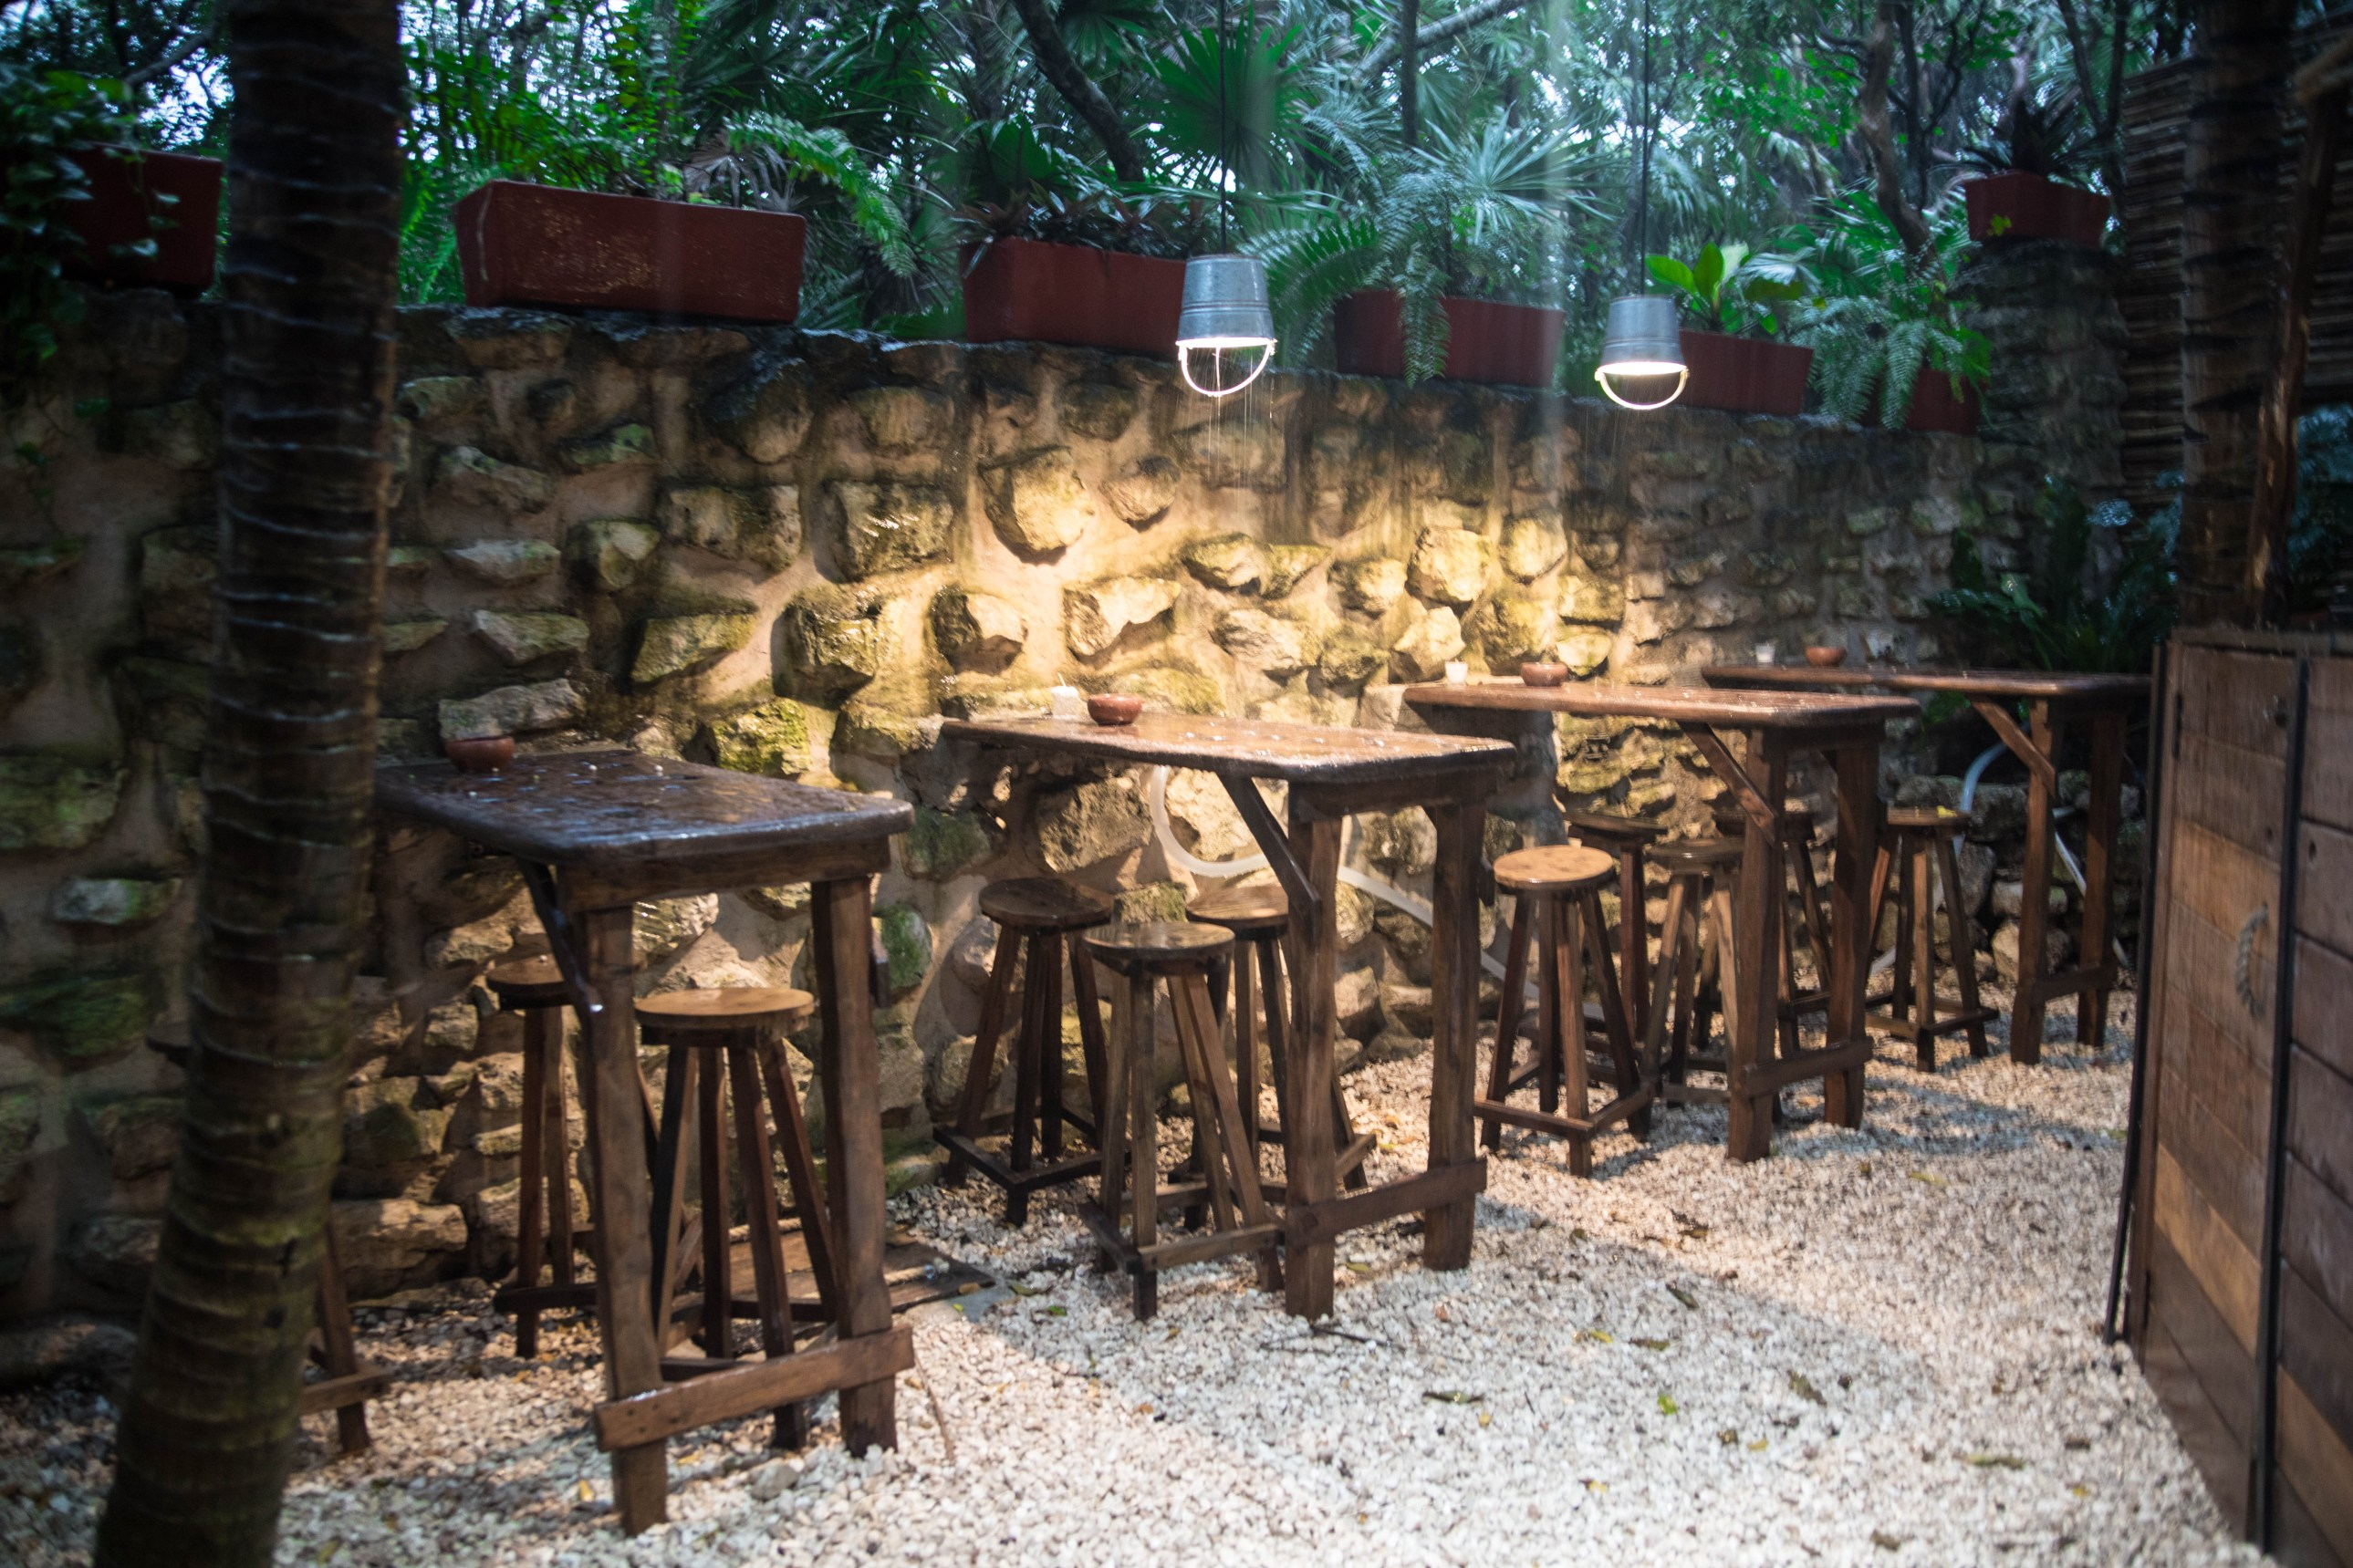 Kitchen Table Tulum Wood Fire Cooked Caribbean Food Sustainable Food in the Jungle